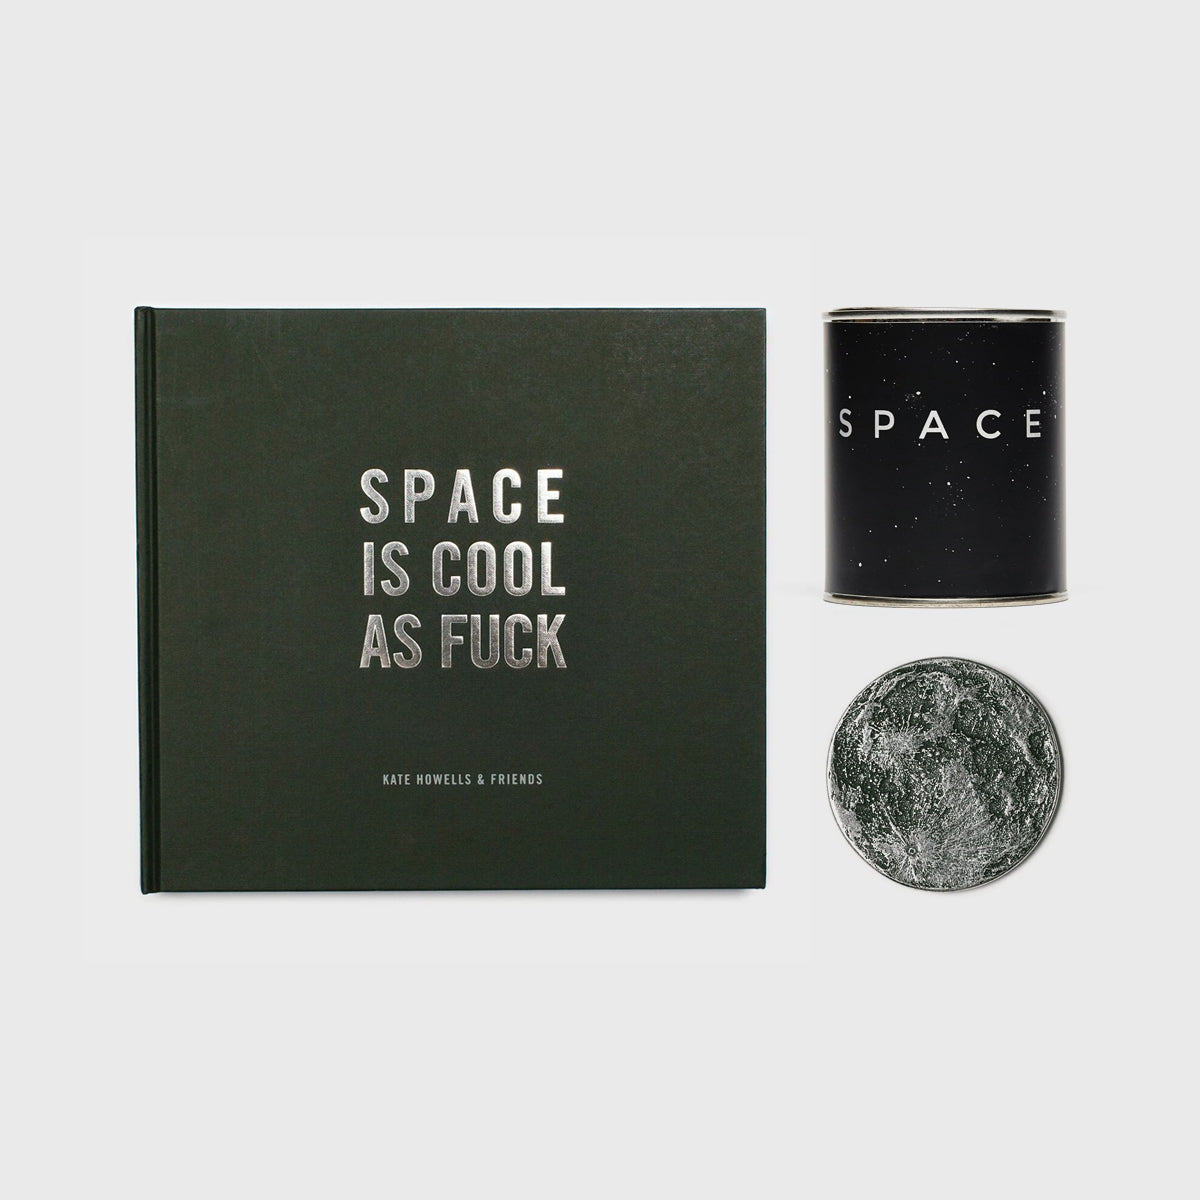 The Space Kit